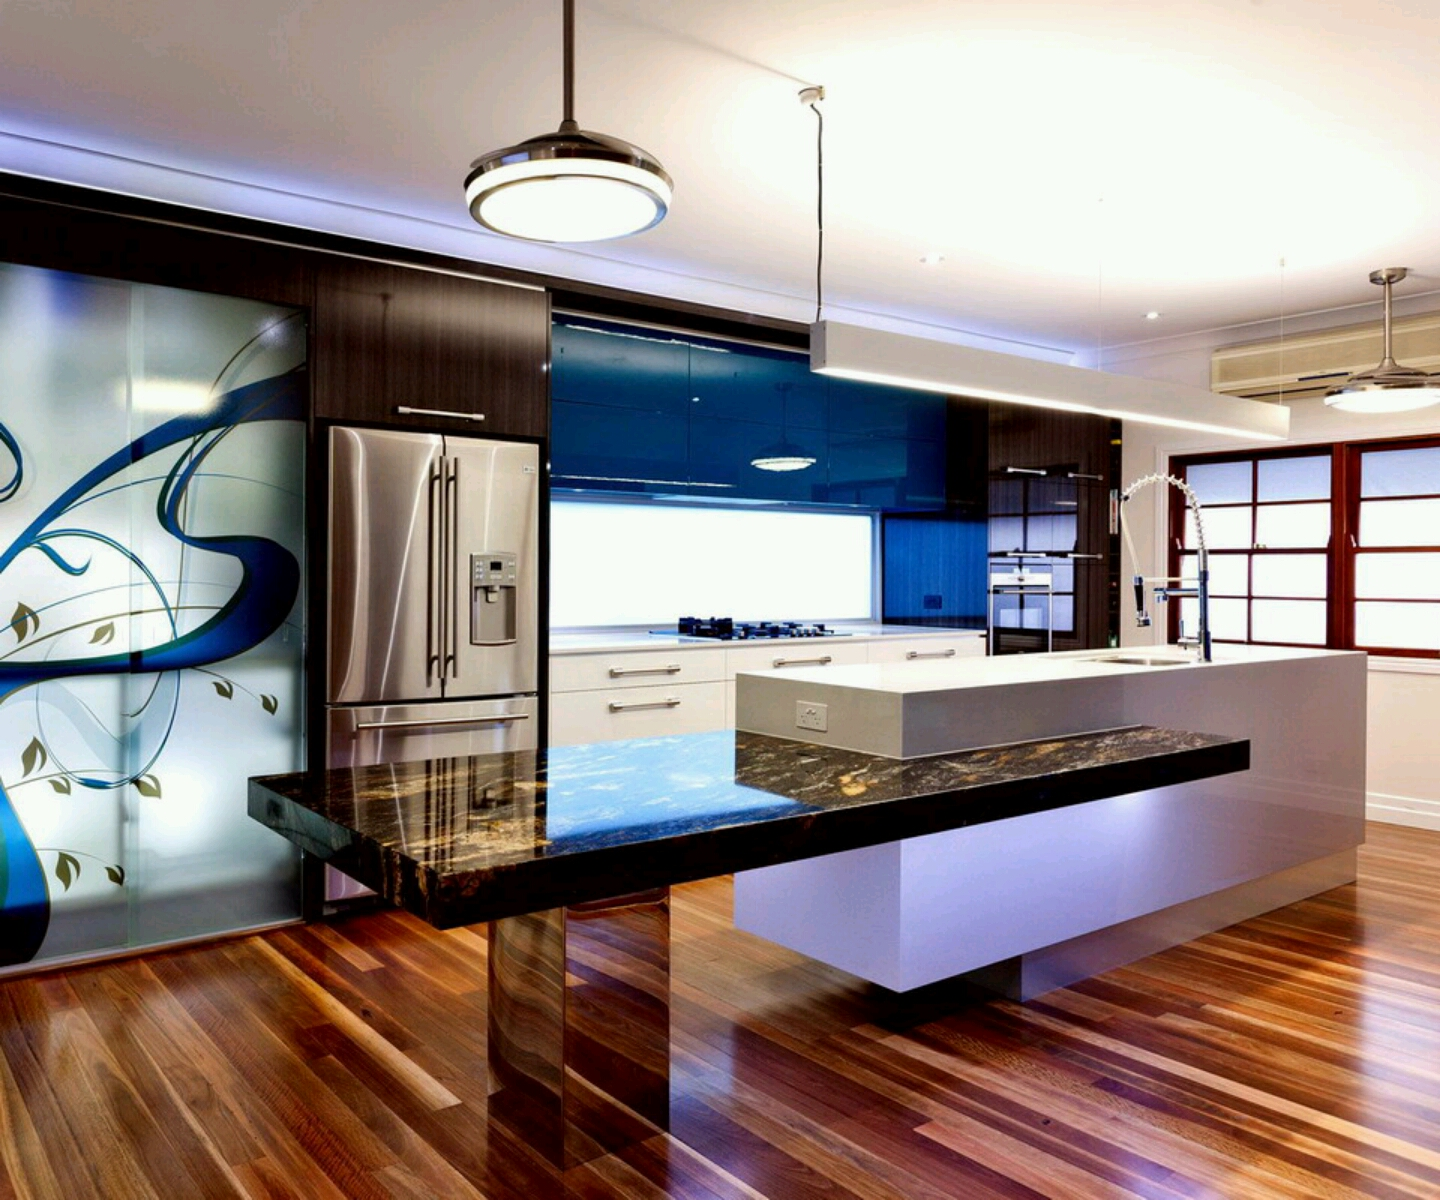 Latest Design For Kitchen: 25 Kitchen Design Inspiration Ideas